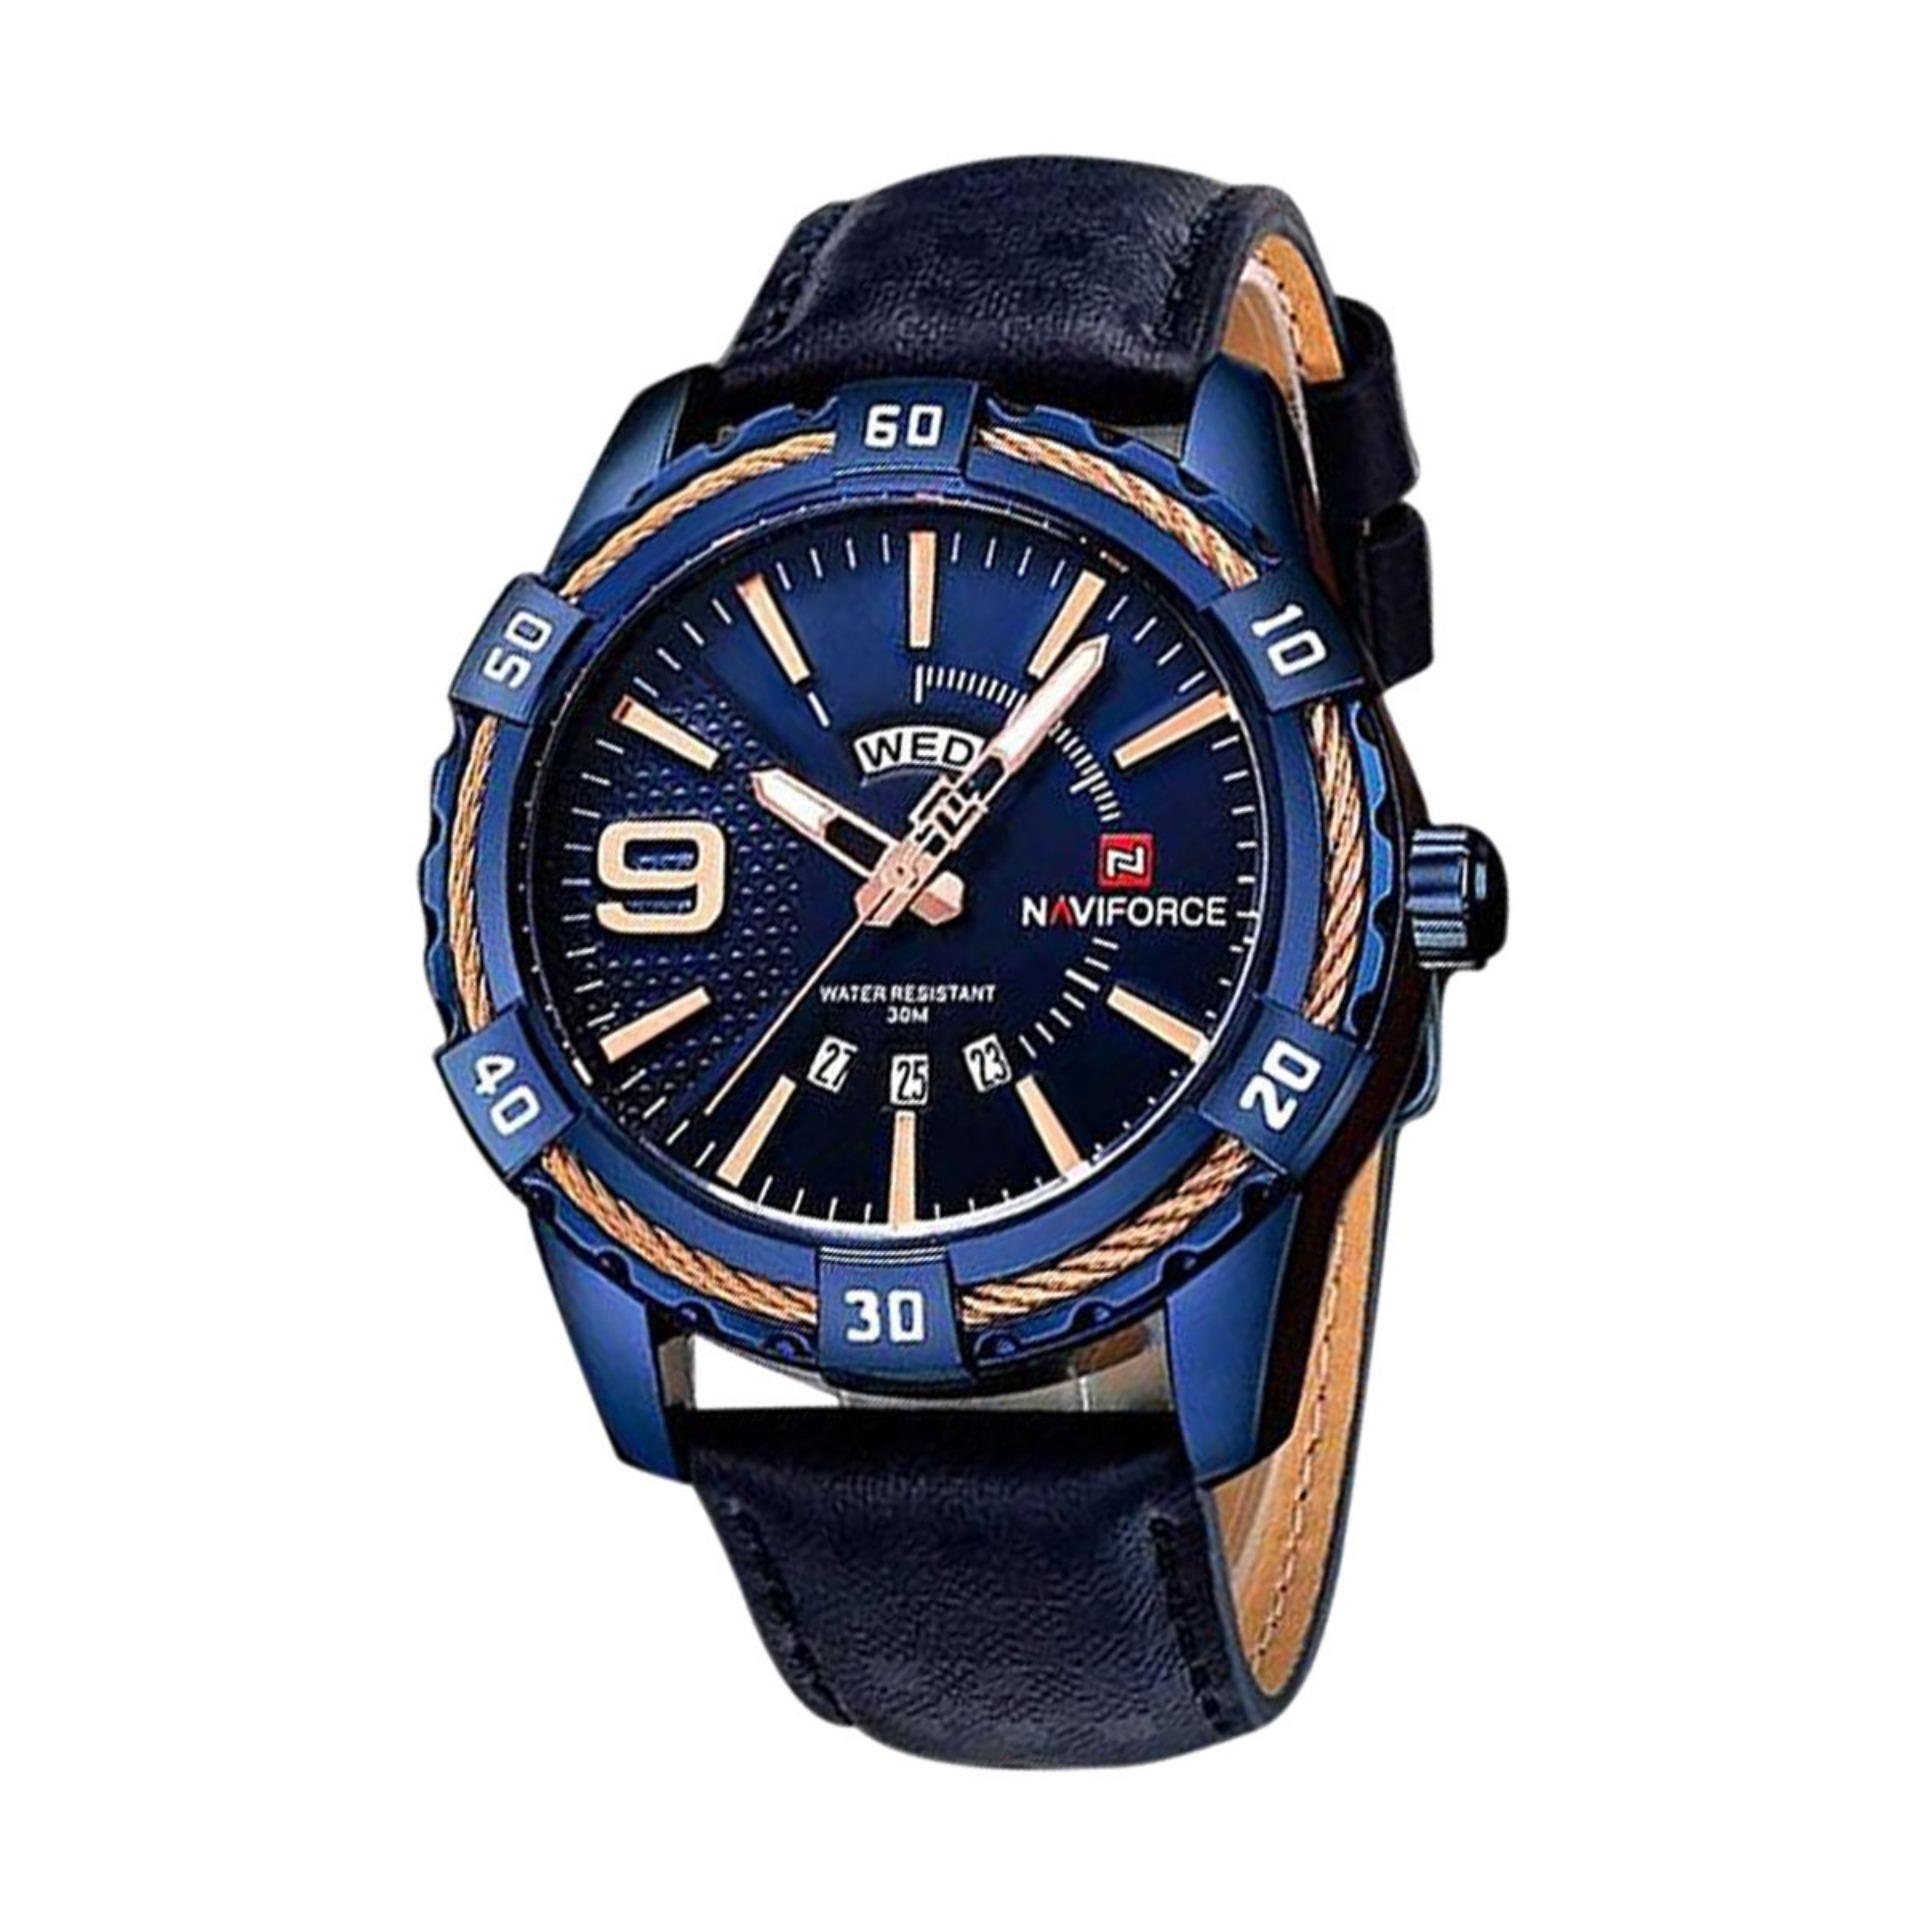 NF9117 Stainless Steel Analog Watch for Men Blue